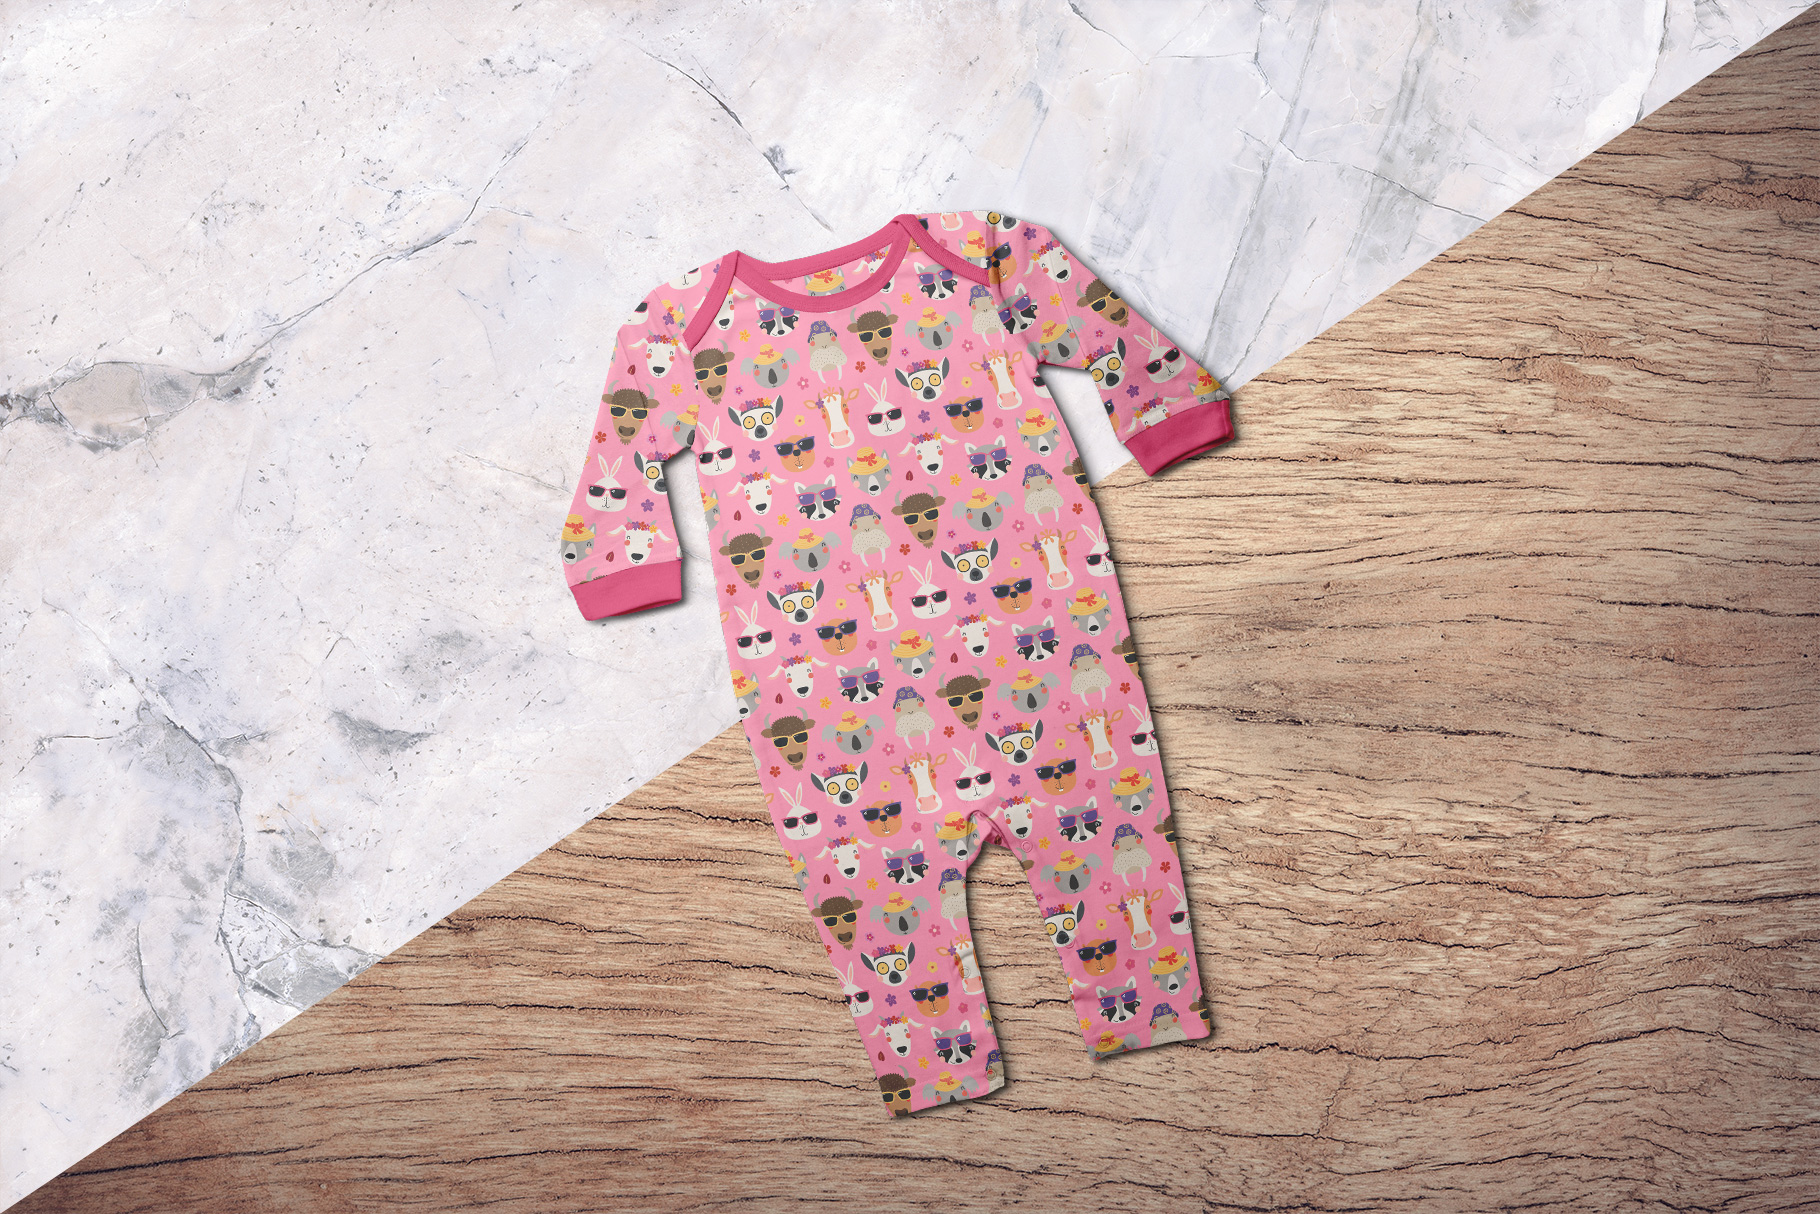 background options of the top view kids quarter sleeve romper mockup